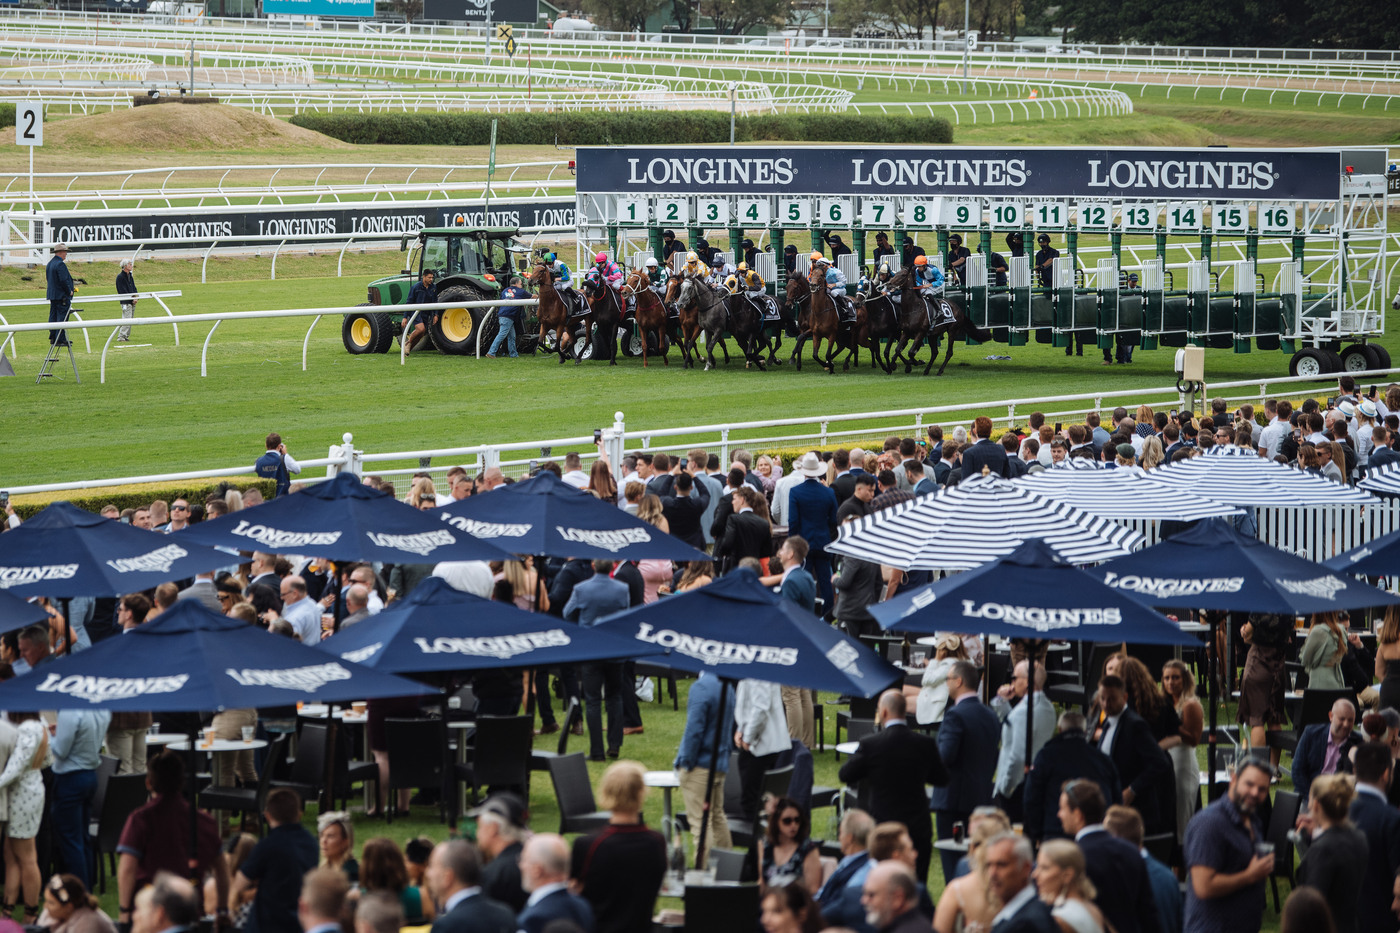 Longines Flat Racing Event: Longines timed the victory of Addeybb in the Longines Queen Elizabeth Stakes 4